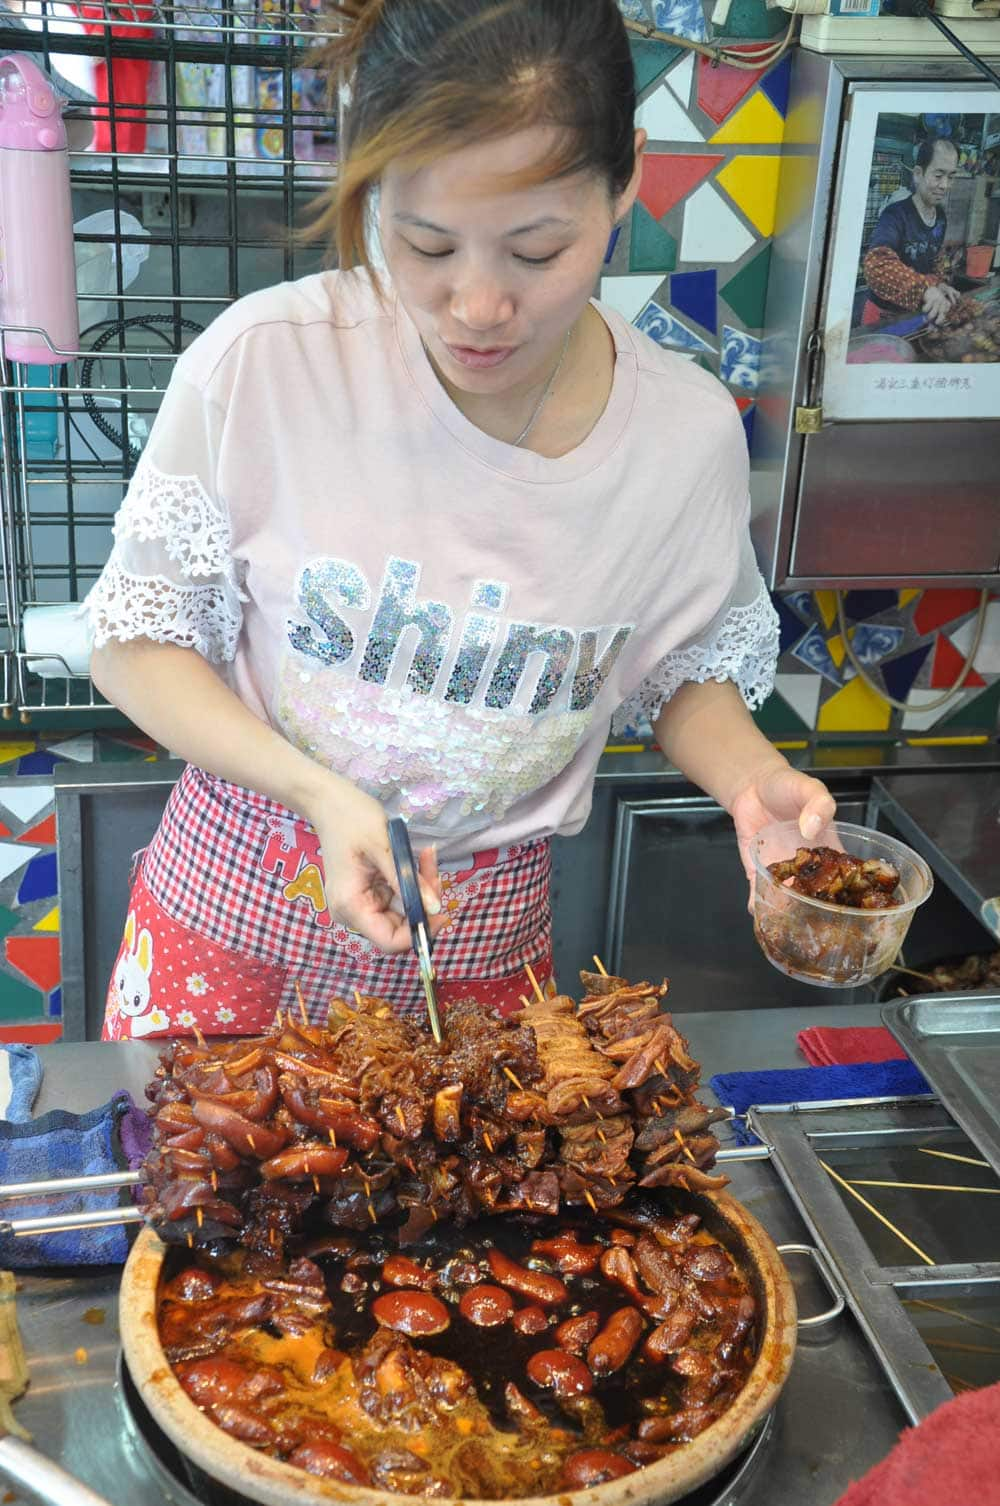 Macau Street Food: Pig Knuckles with Ginger pretty seller